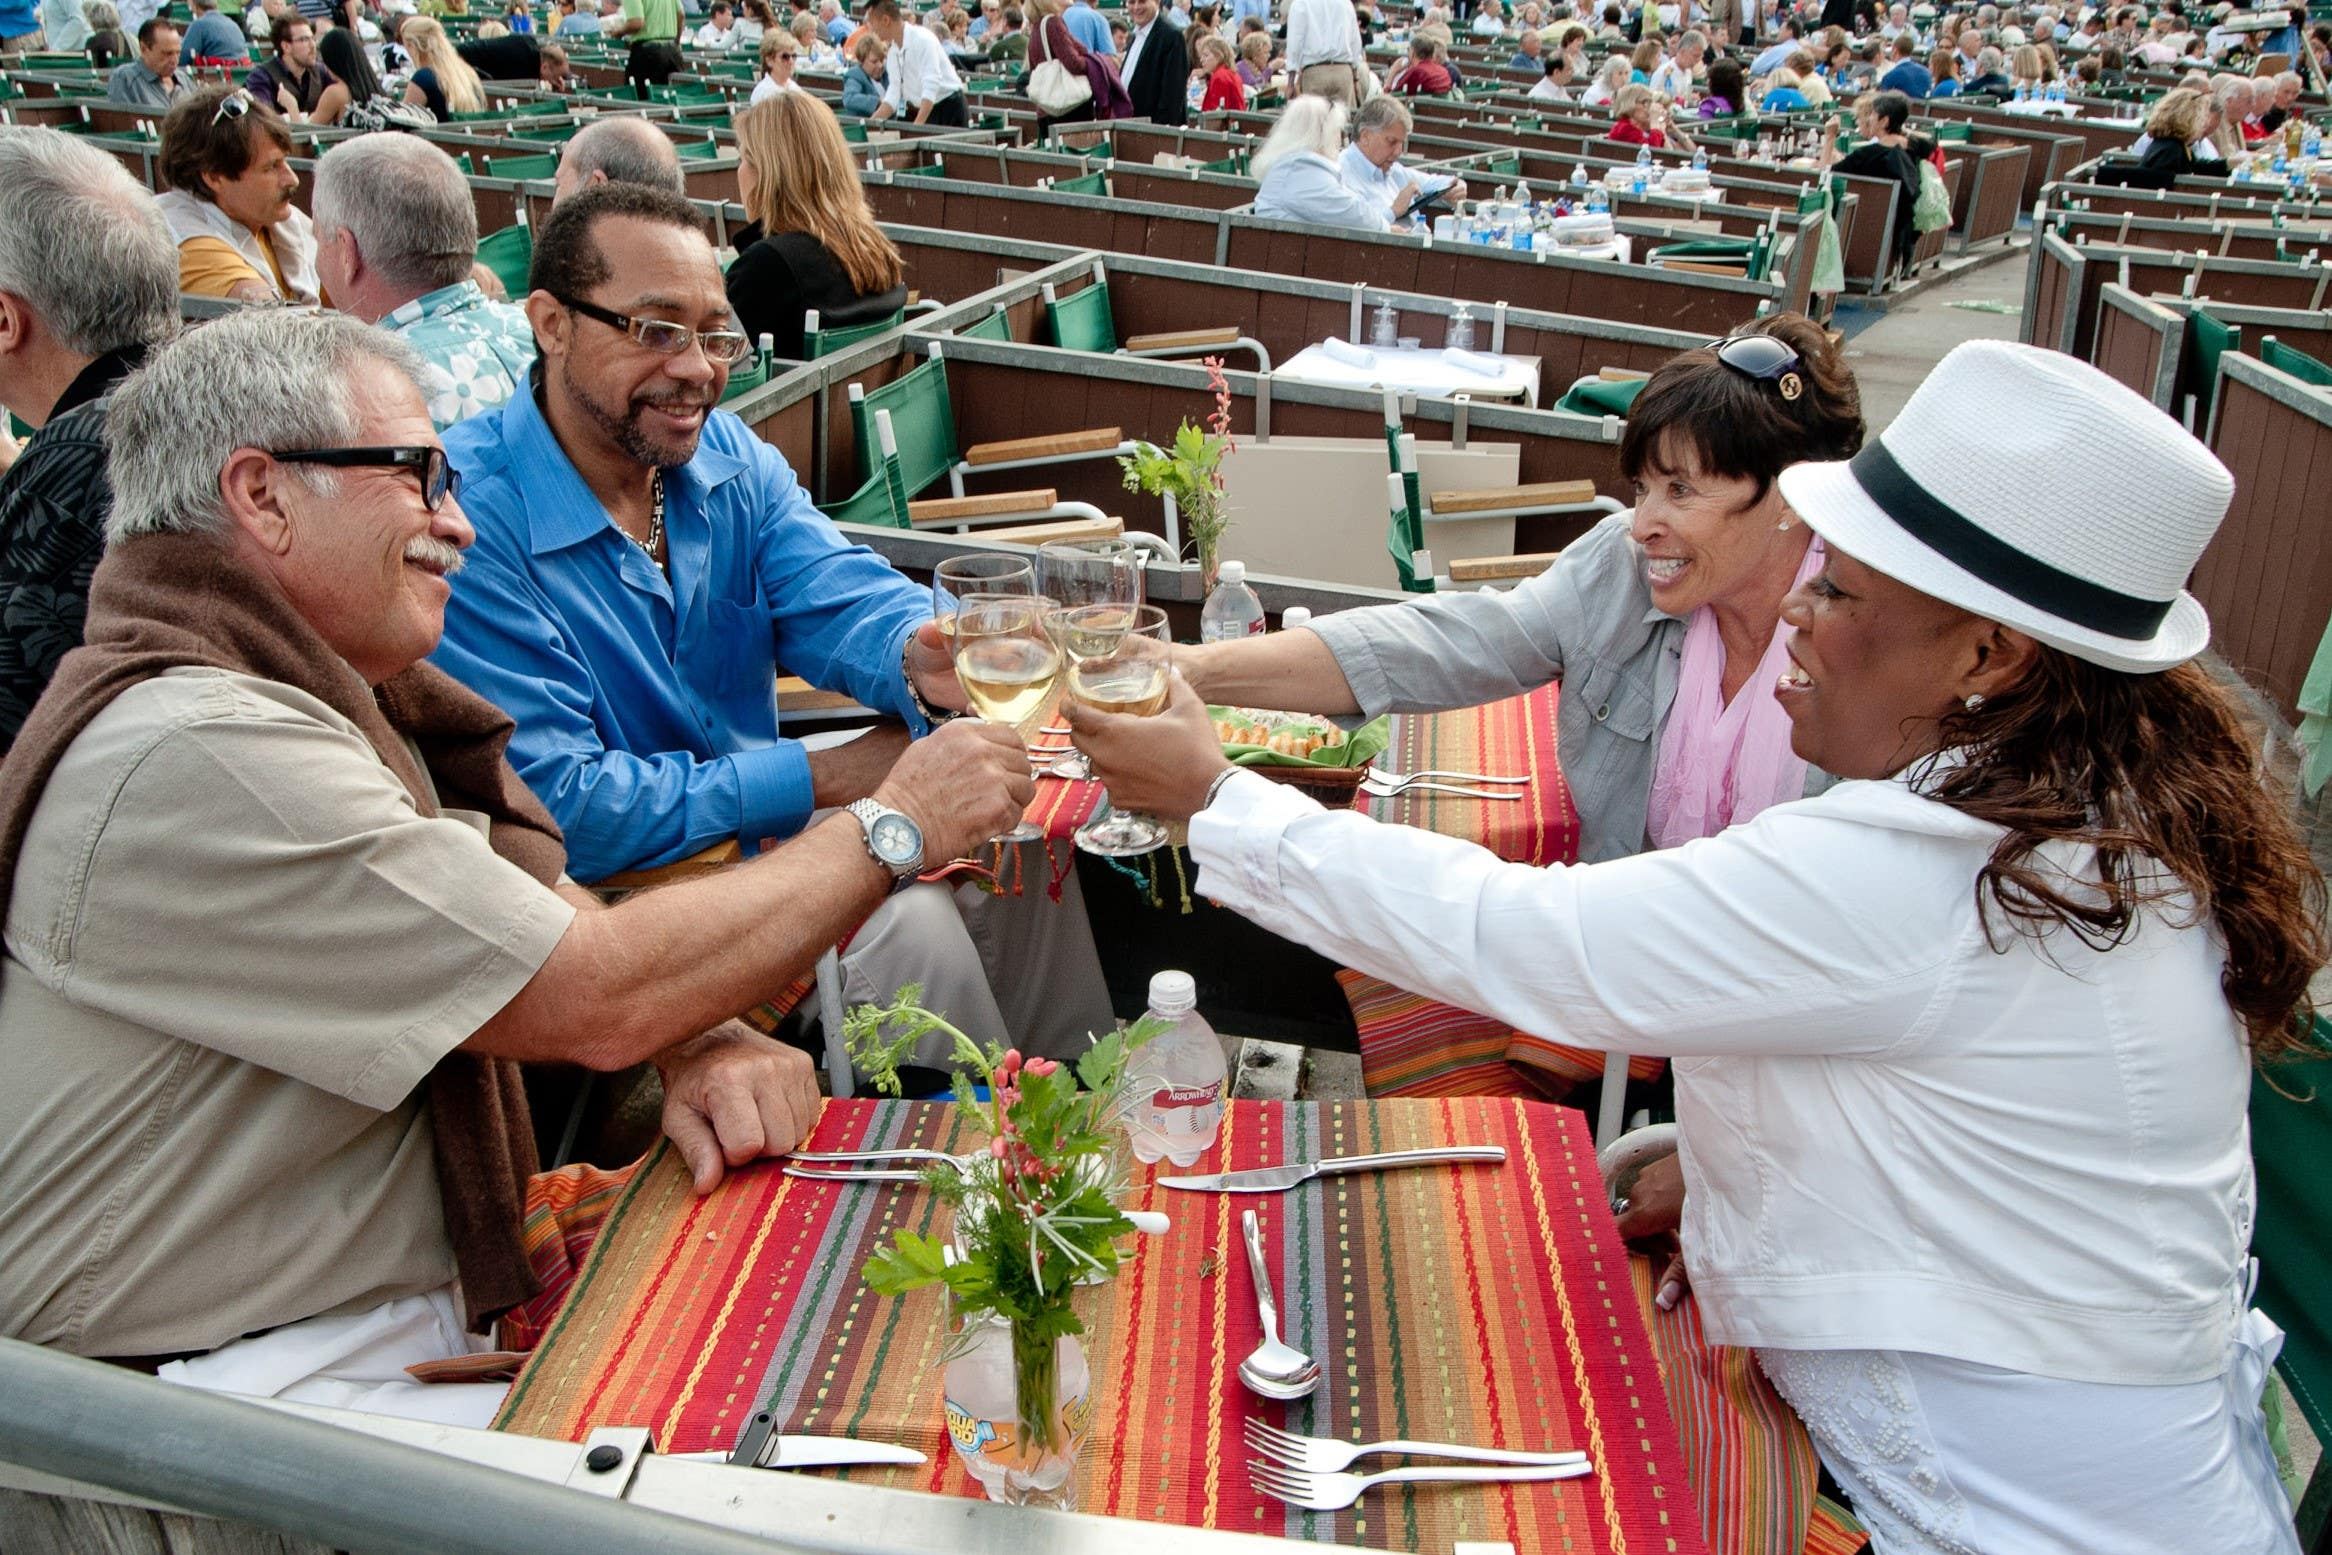 Cheers in a Box Seat at the Hollywood Bowl